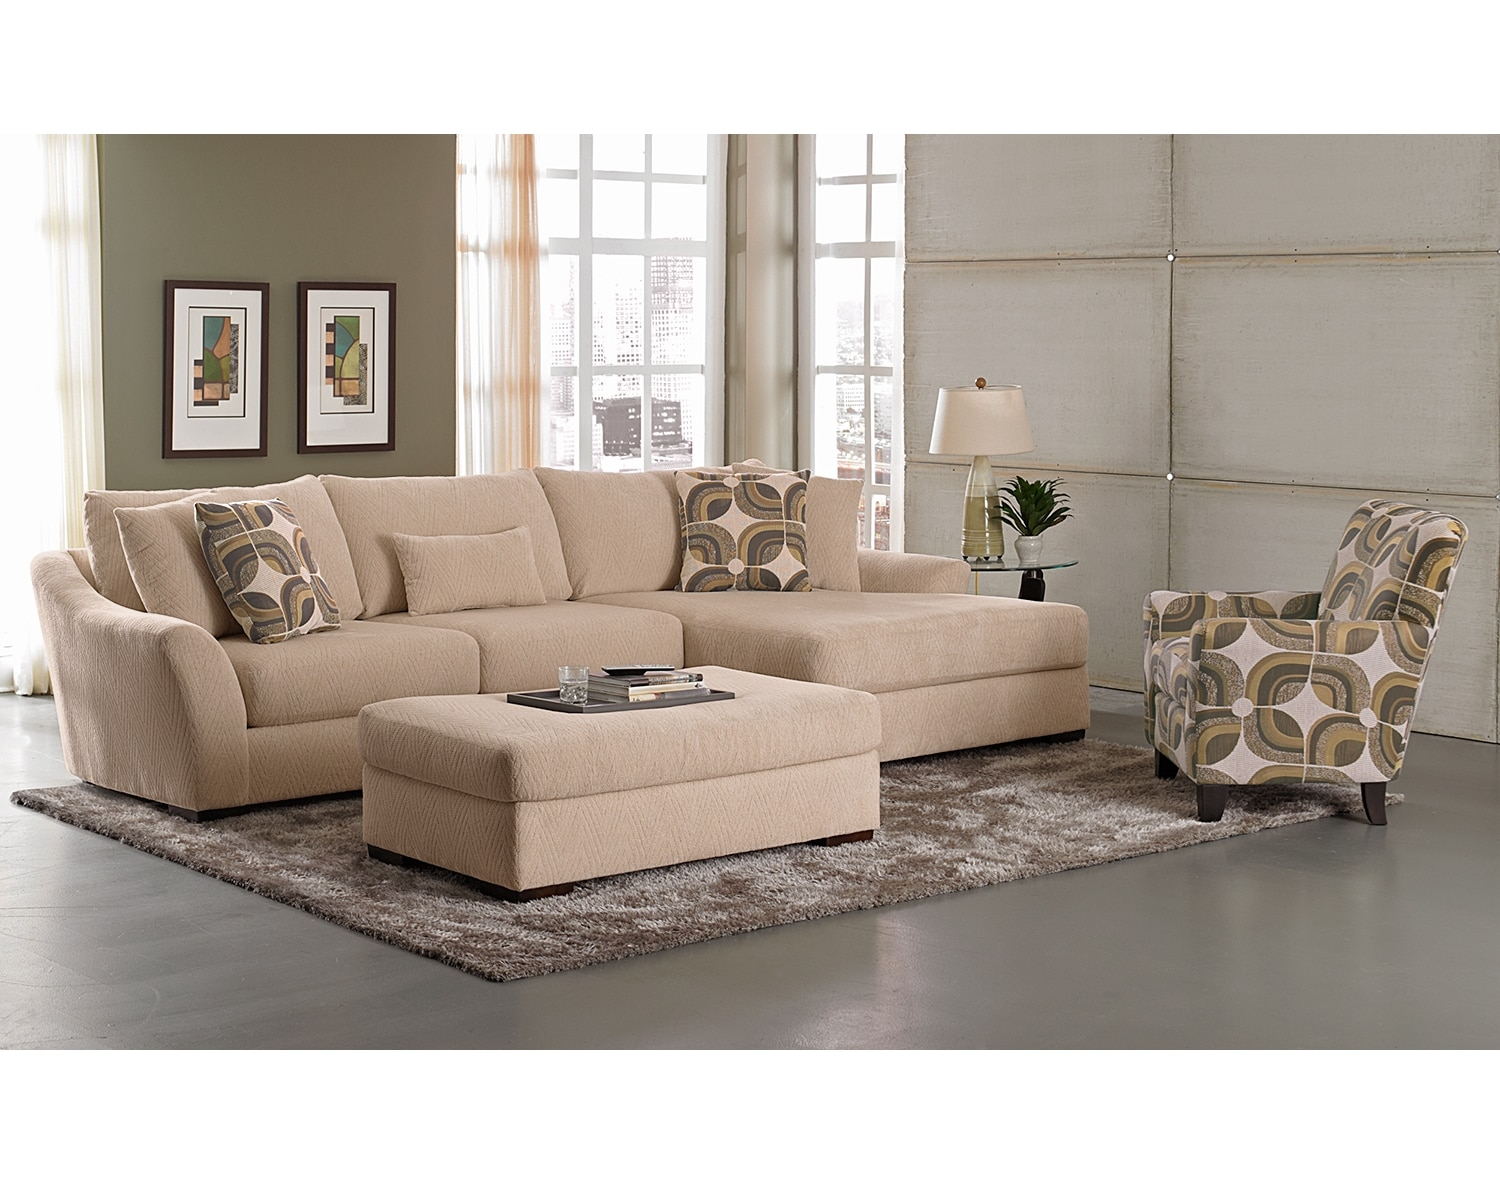 The Oasis Sectional Collection - Cream